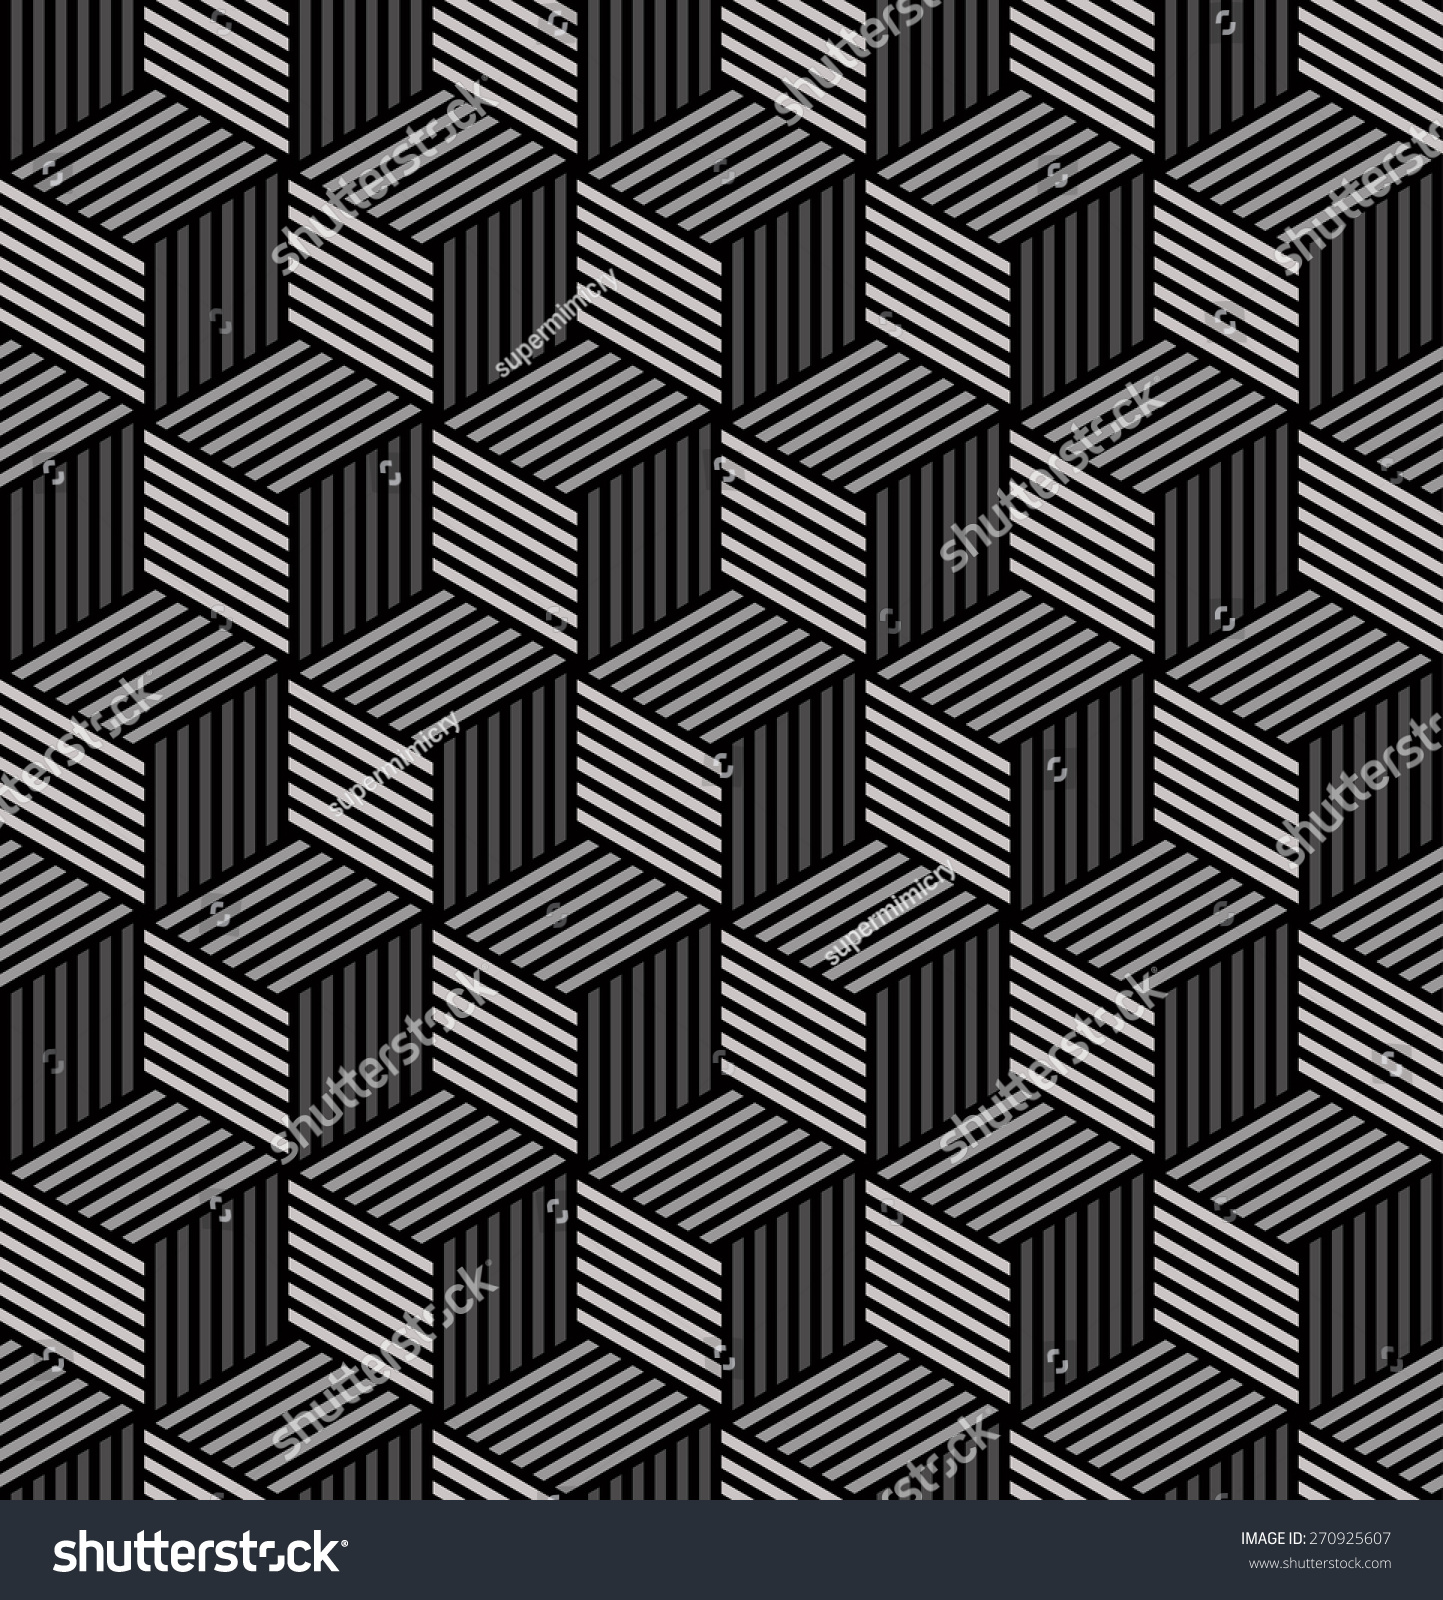 Striped Isometric Cube Pattern Seamless Vector Stock ...